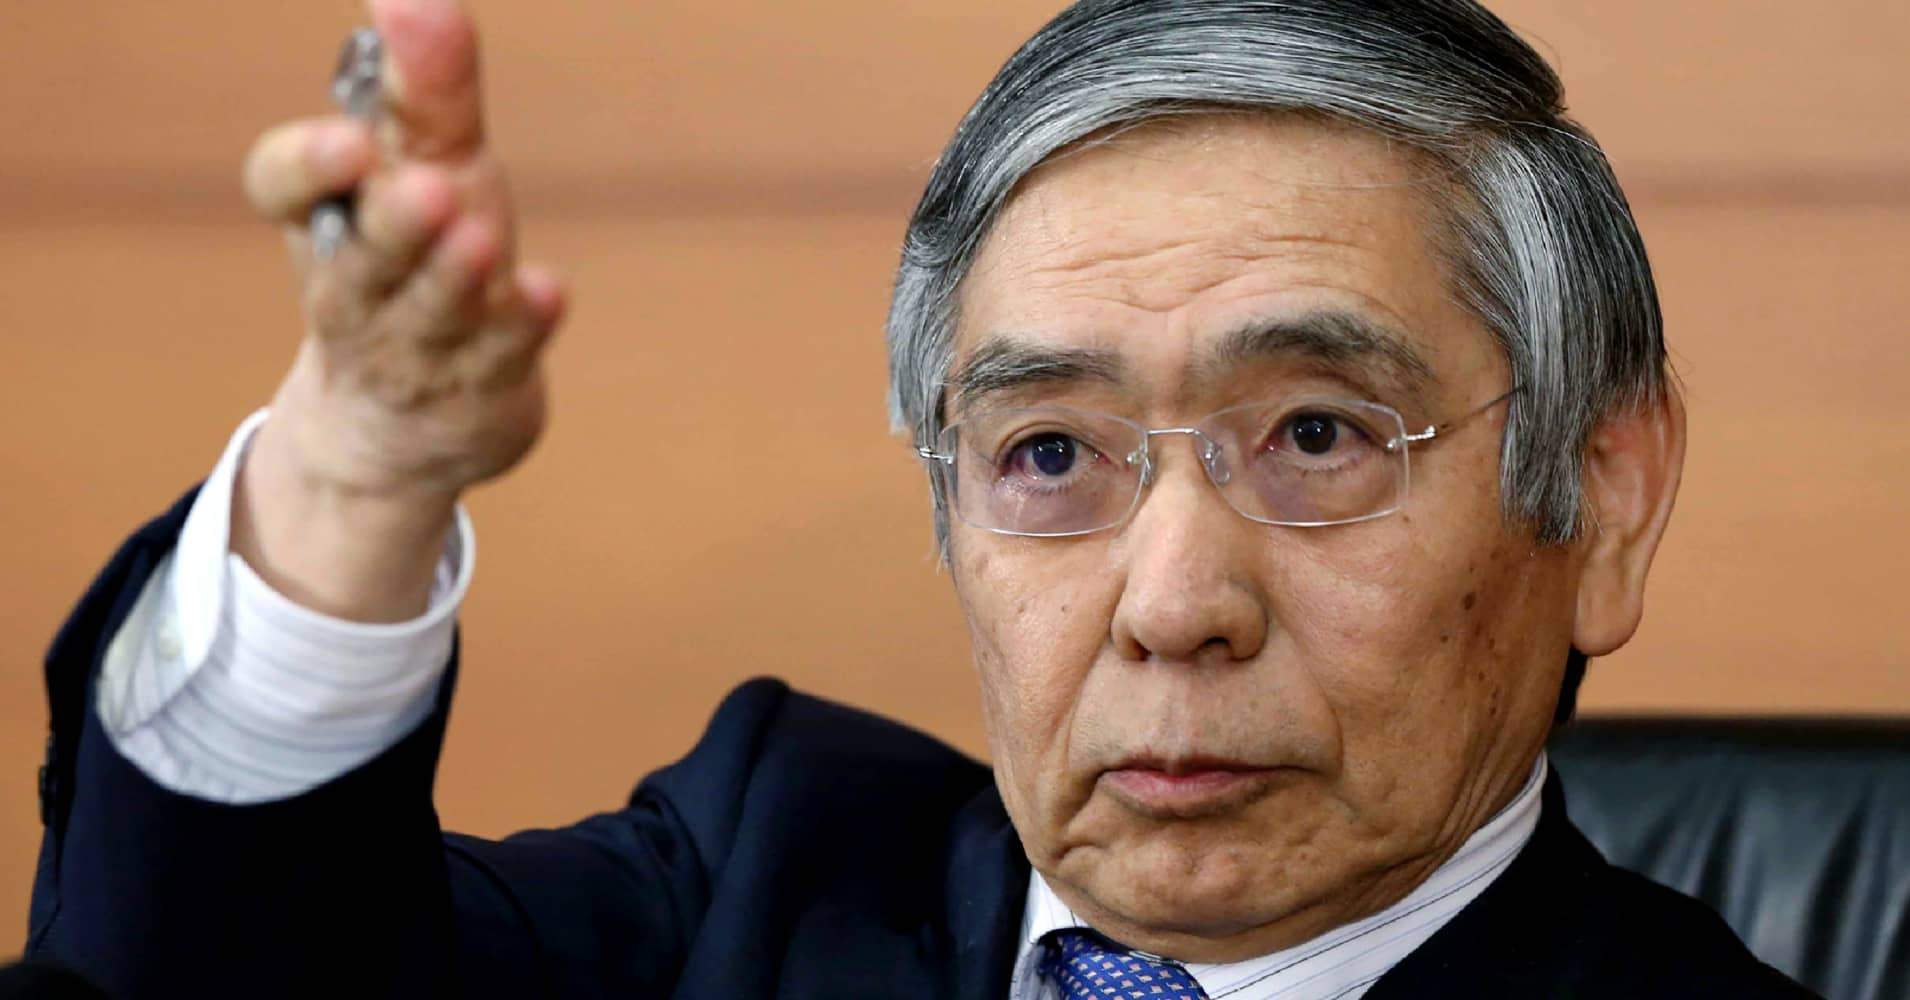 BOJ's Kuroda says no rate hike 'for an extended time': paper